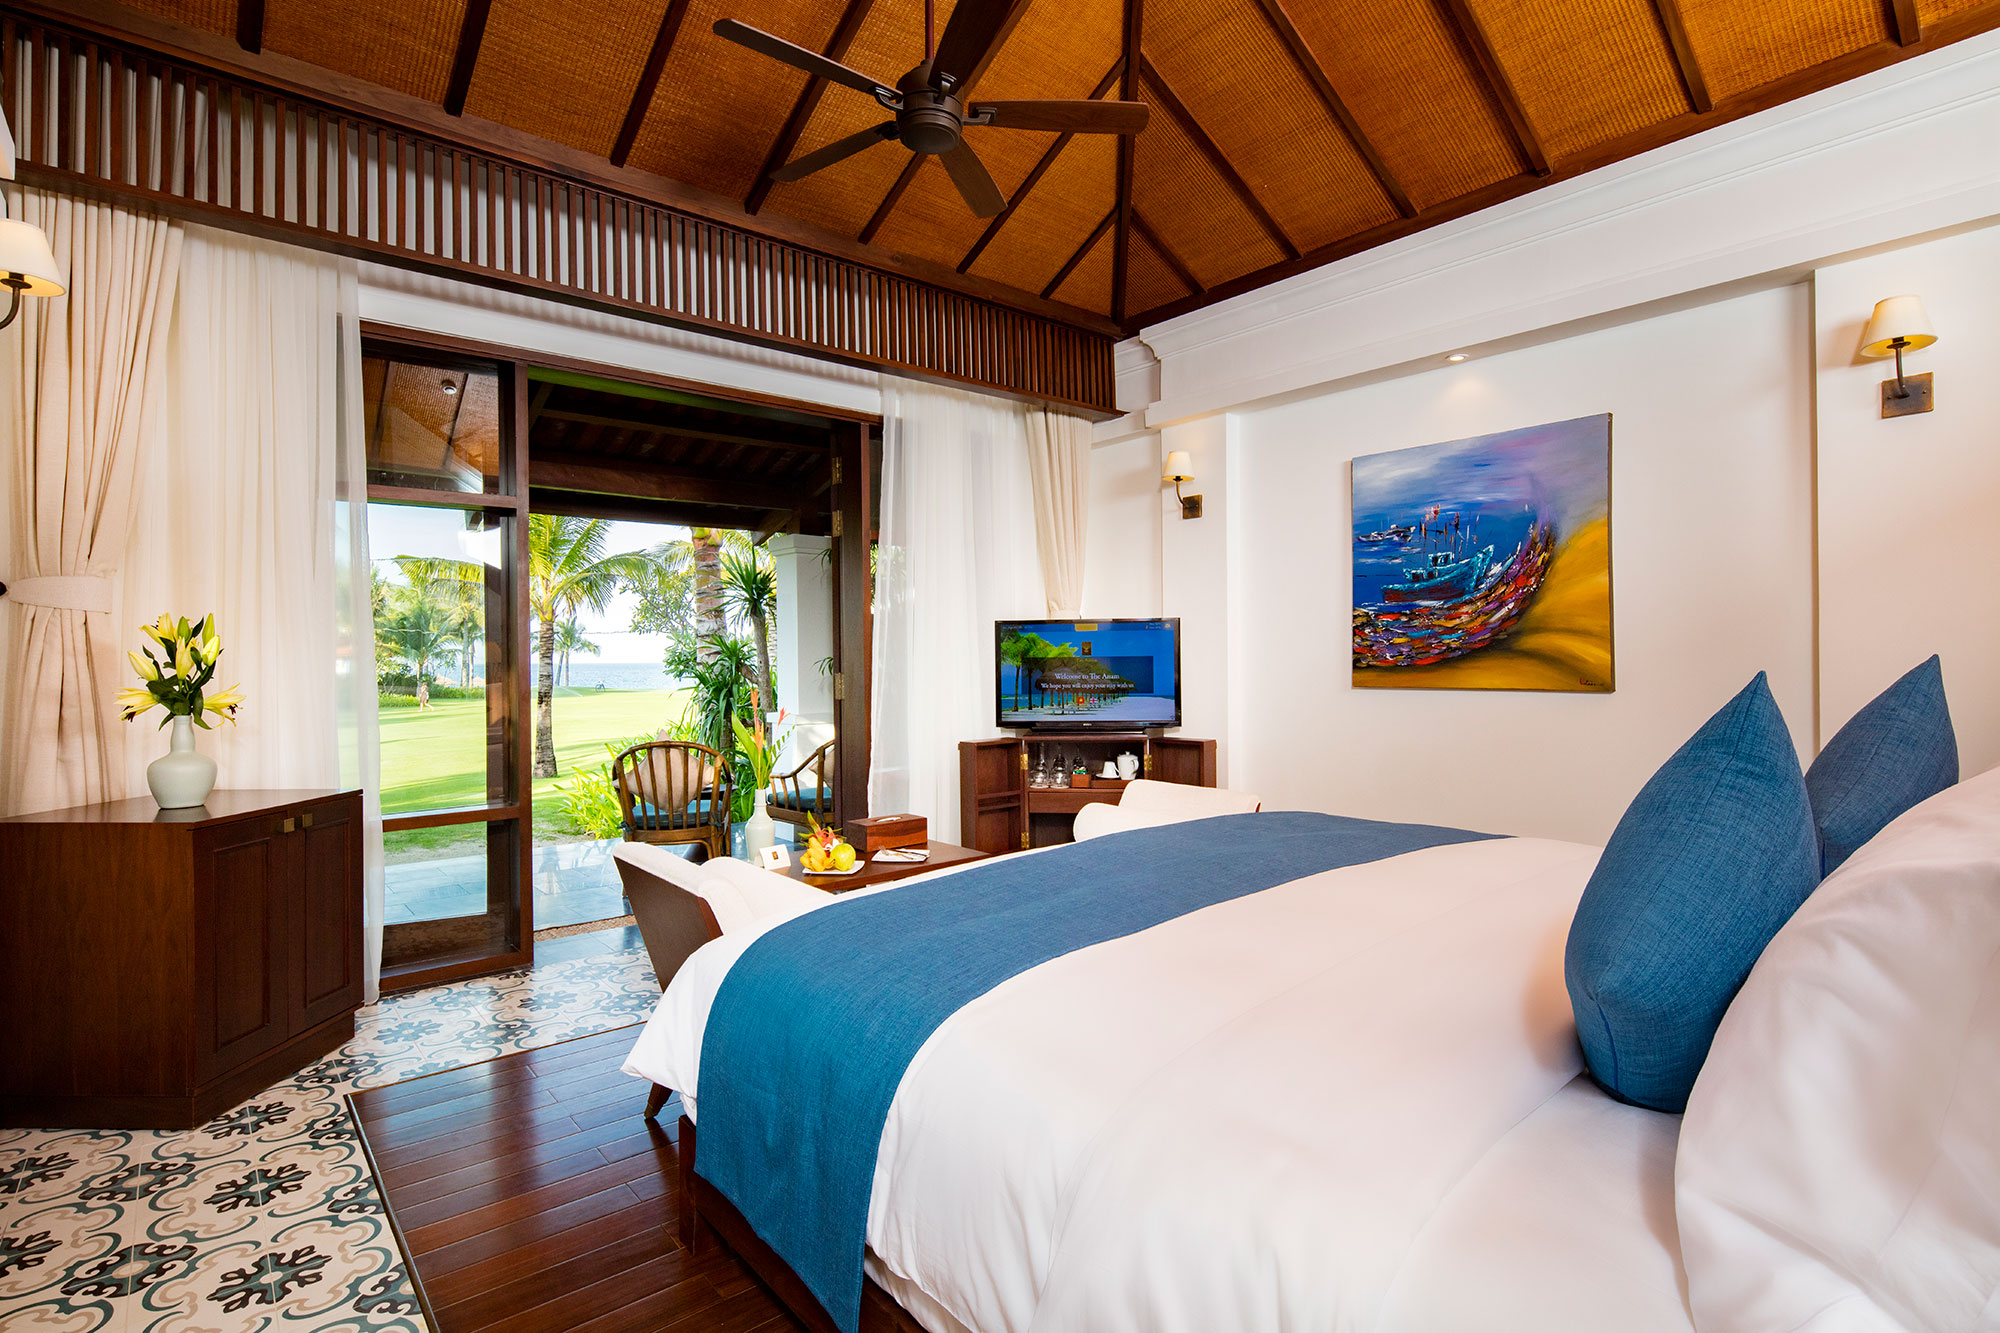 Sea View Villa - Our Sea View Villas enjoy panoramic views of the golden beach and turquoise waters beyond and offer a private sweeping balcony or large ground-floor terrace surrounded by lush tropical foliage.The perfect place for some quiet time.